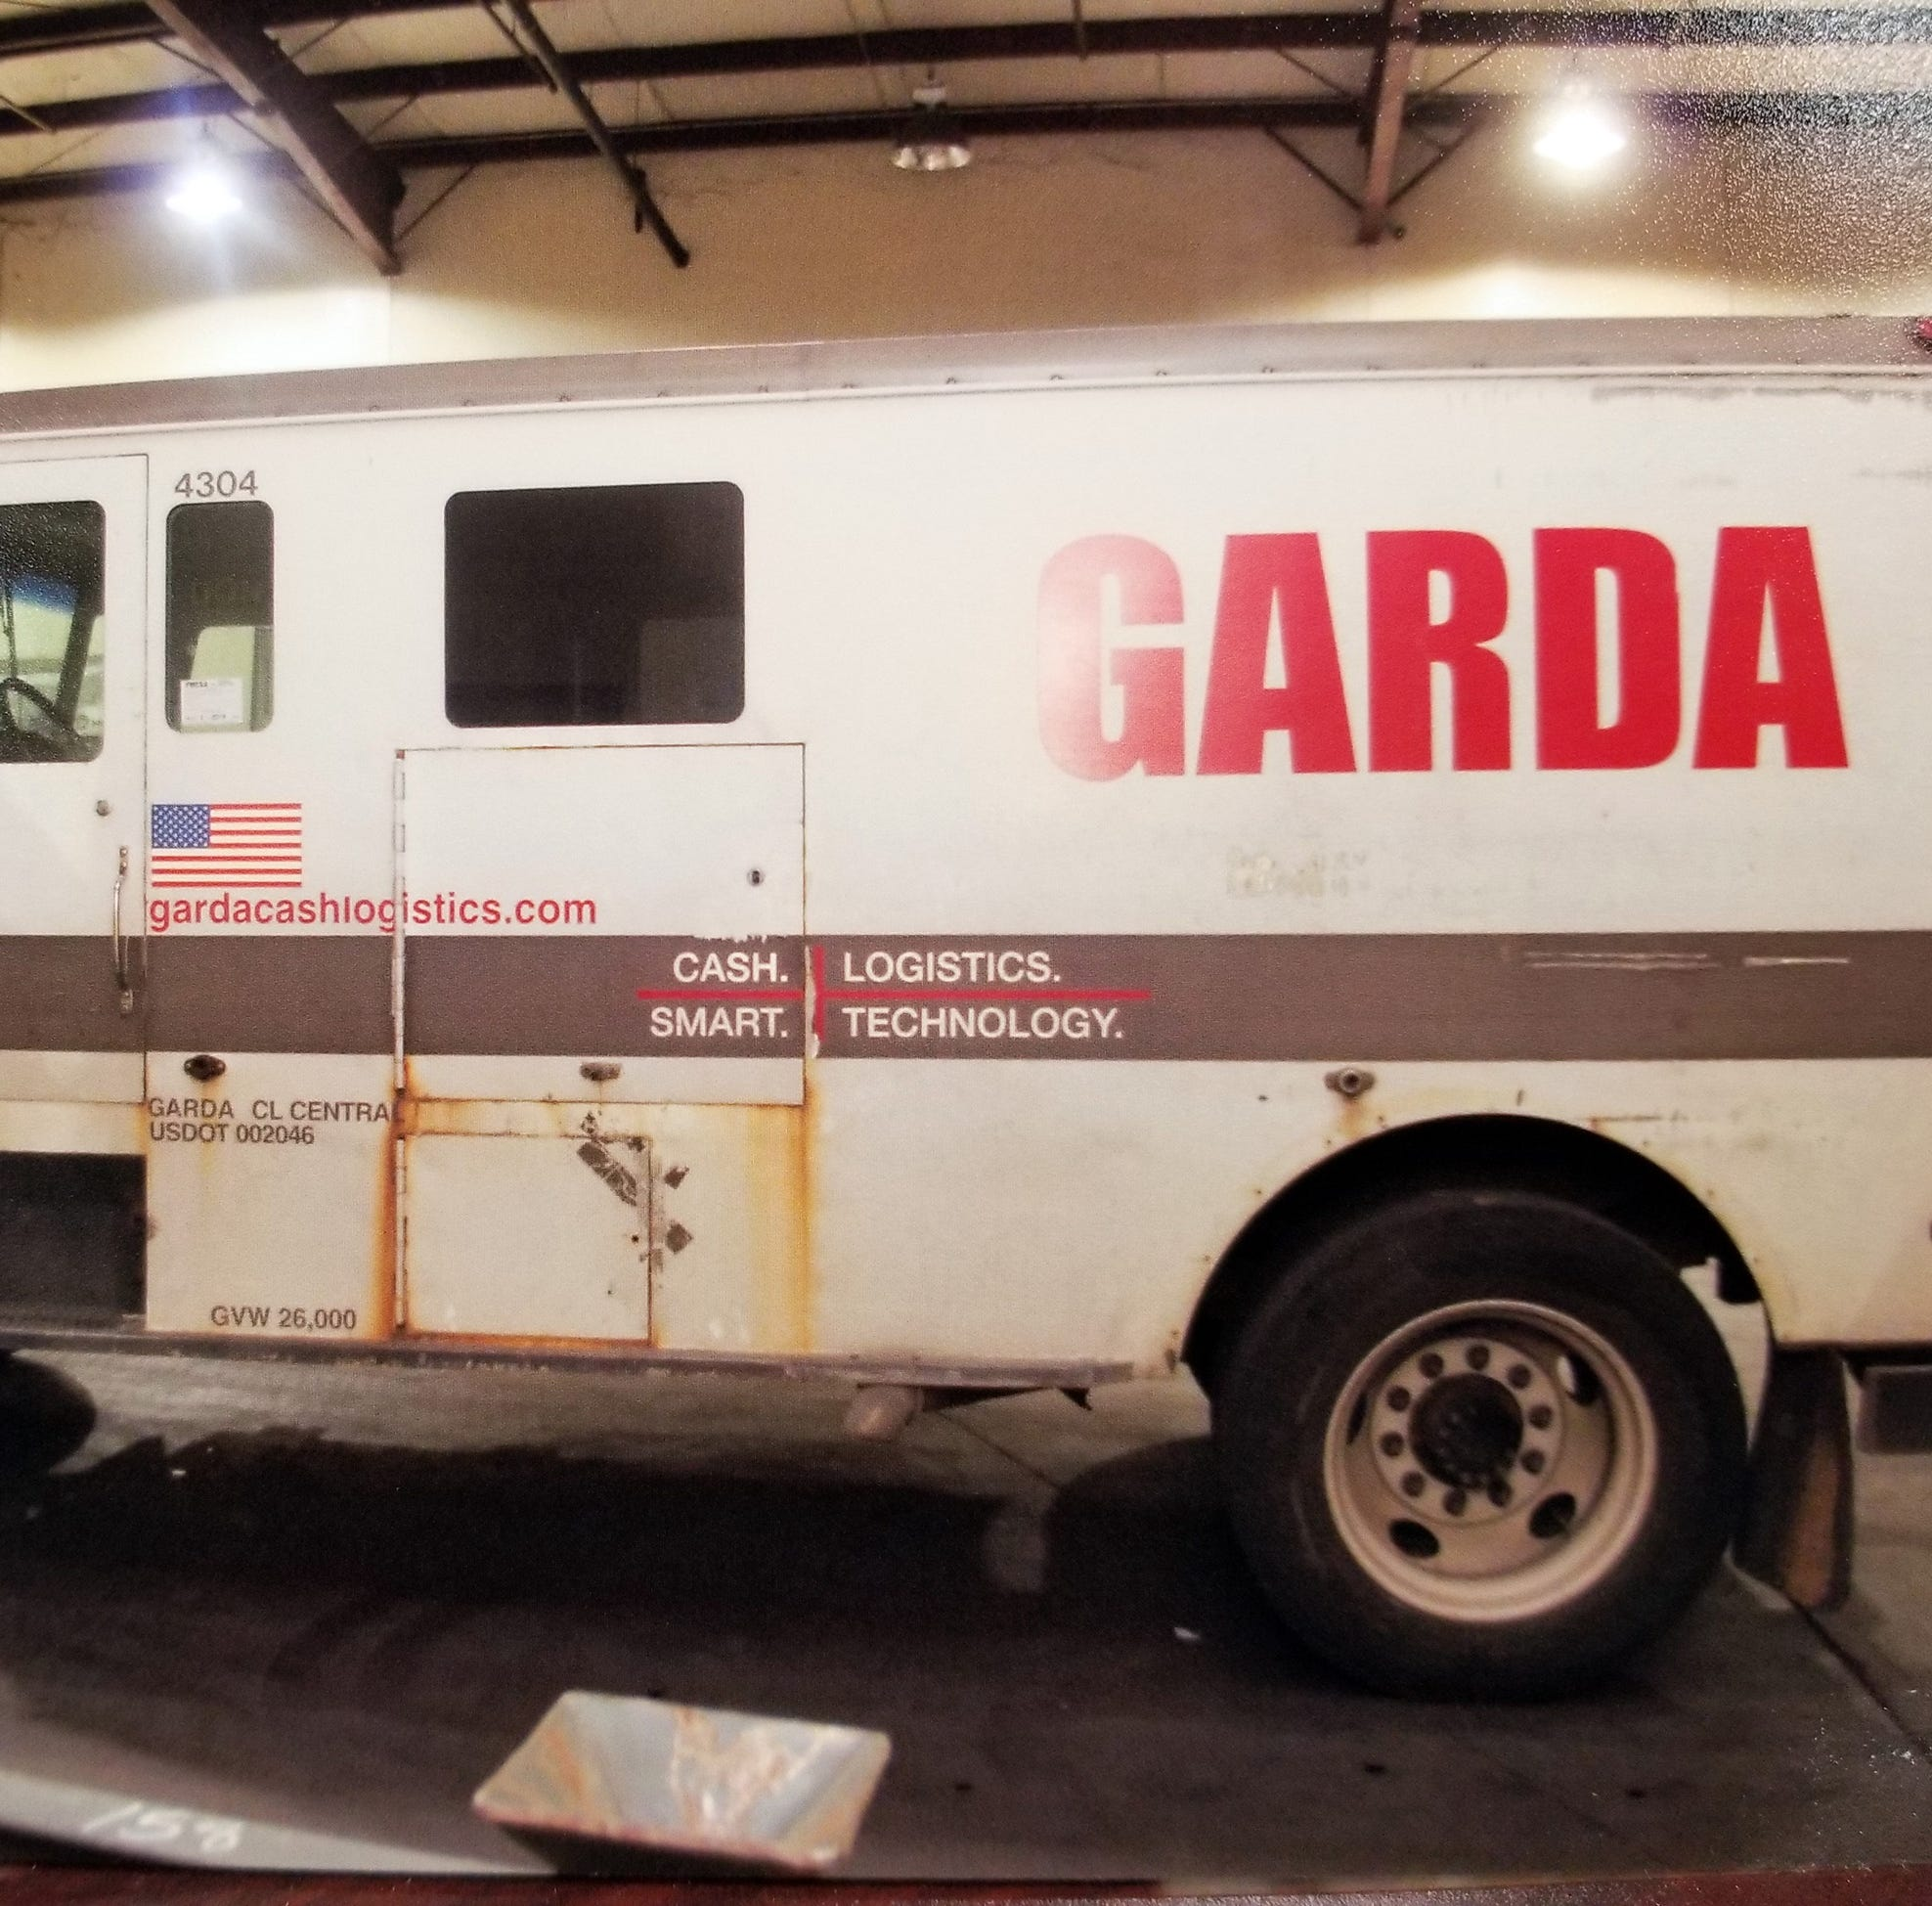 How hard is it to rob an armored truck? Nearly impossible, expert says